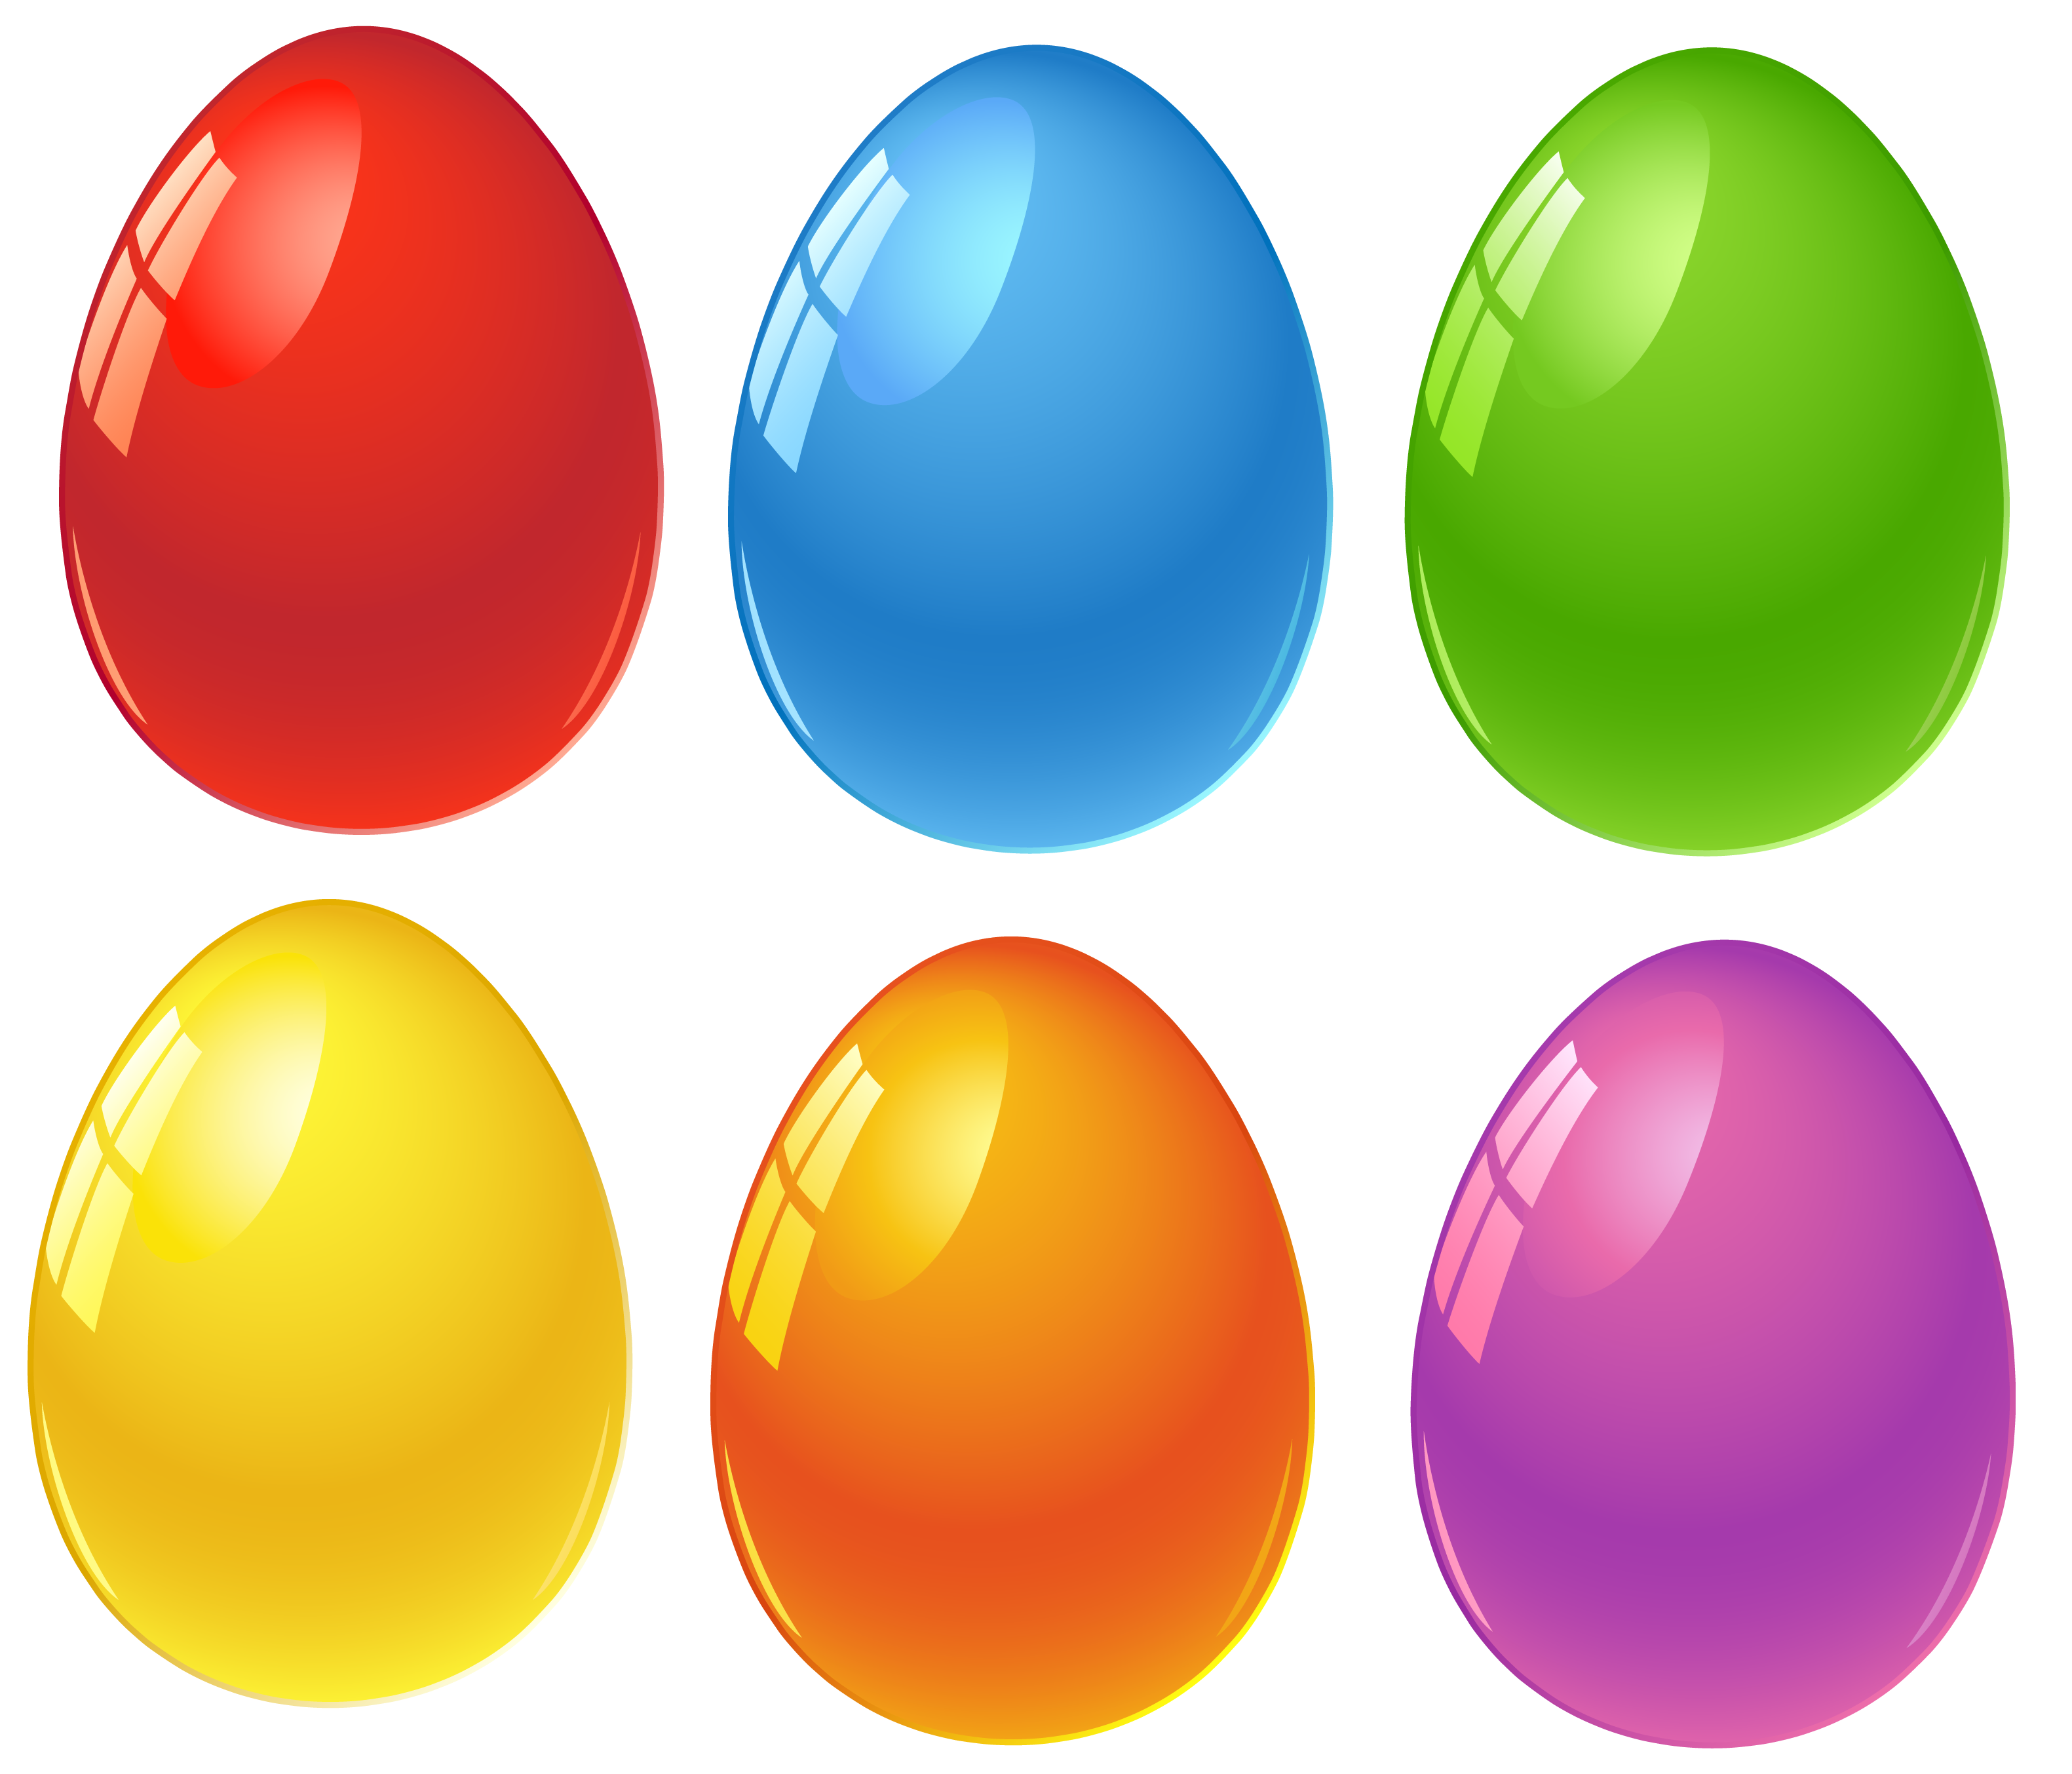 Happy Easter Eggs Clipart Images Pictures Banners Borders Gif Meme To Share On Facebook Easter Eggs Easter Pictures Easter Images